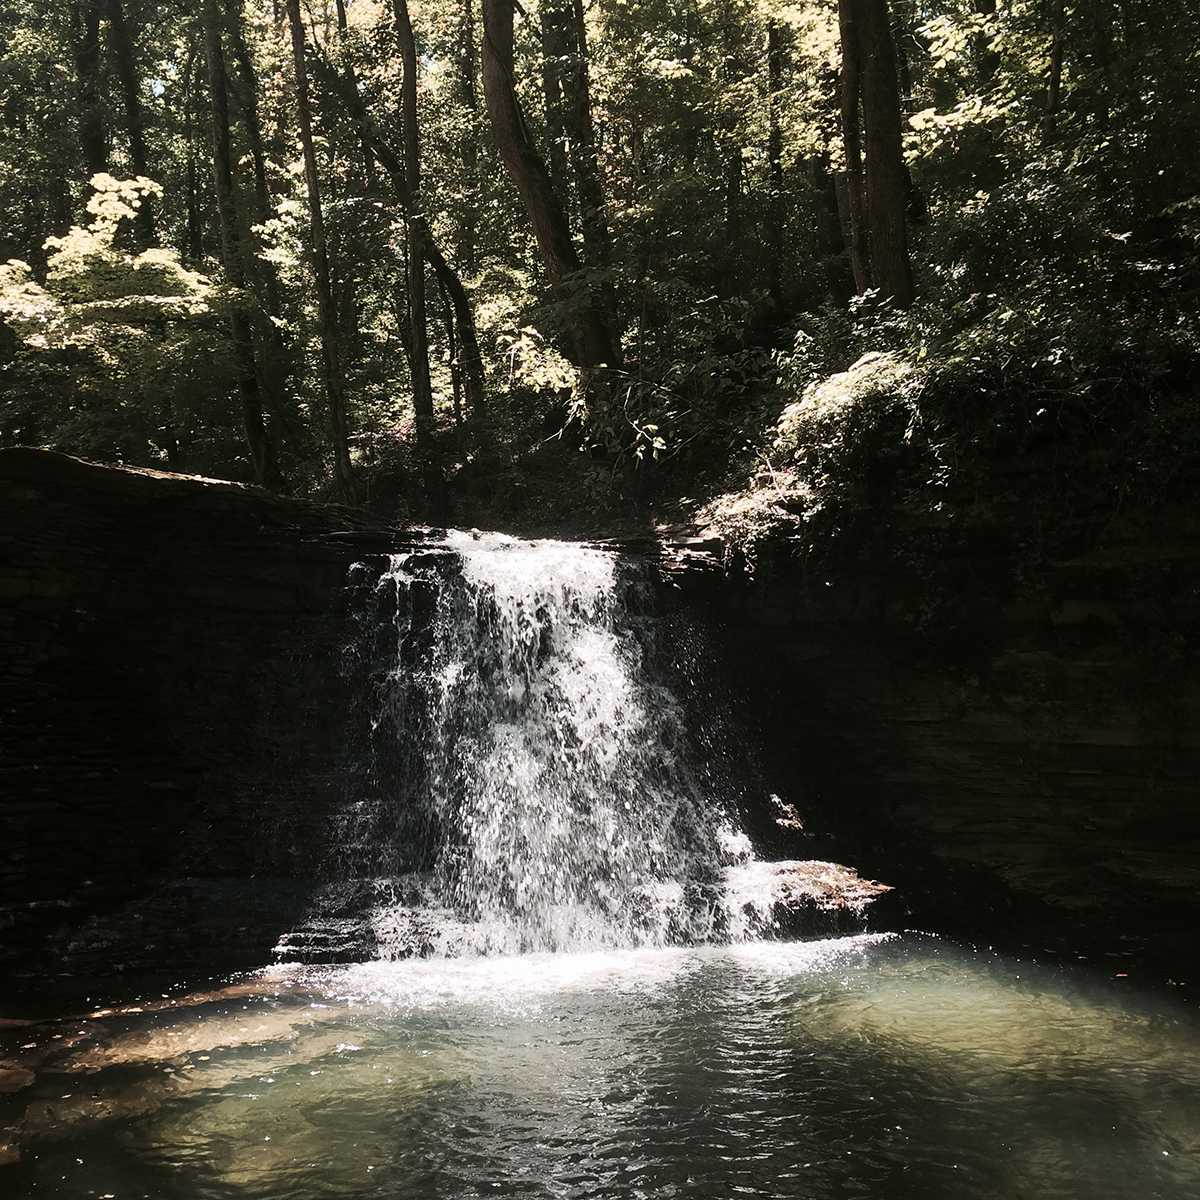 Wolf Pen Mill Farm Waterfall - Photo by Laurie Doctor